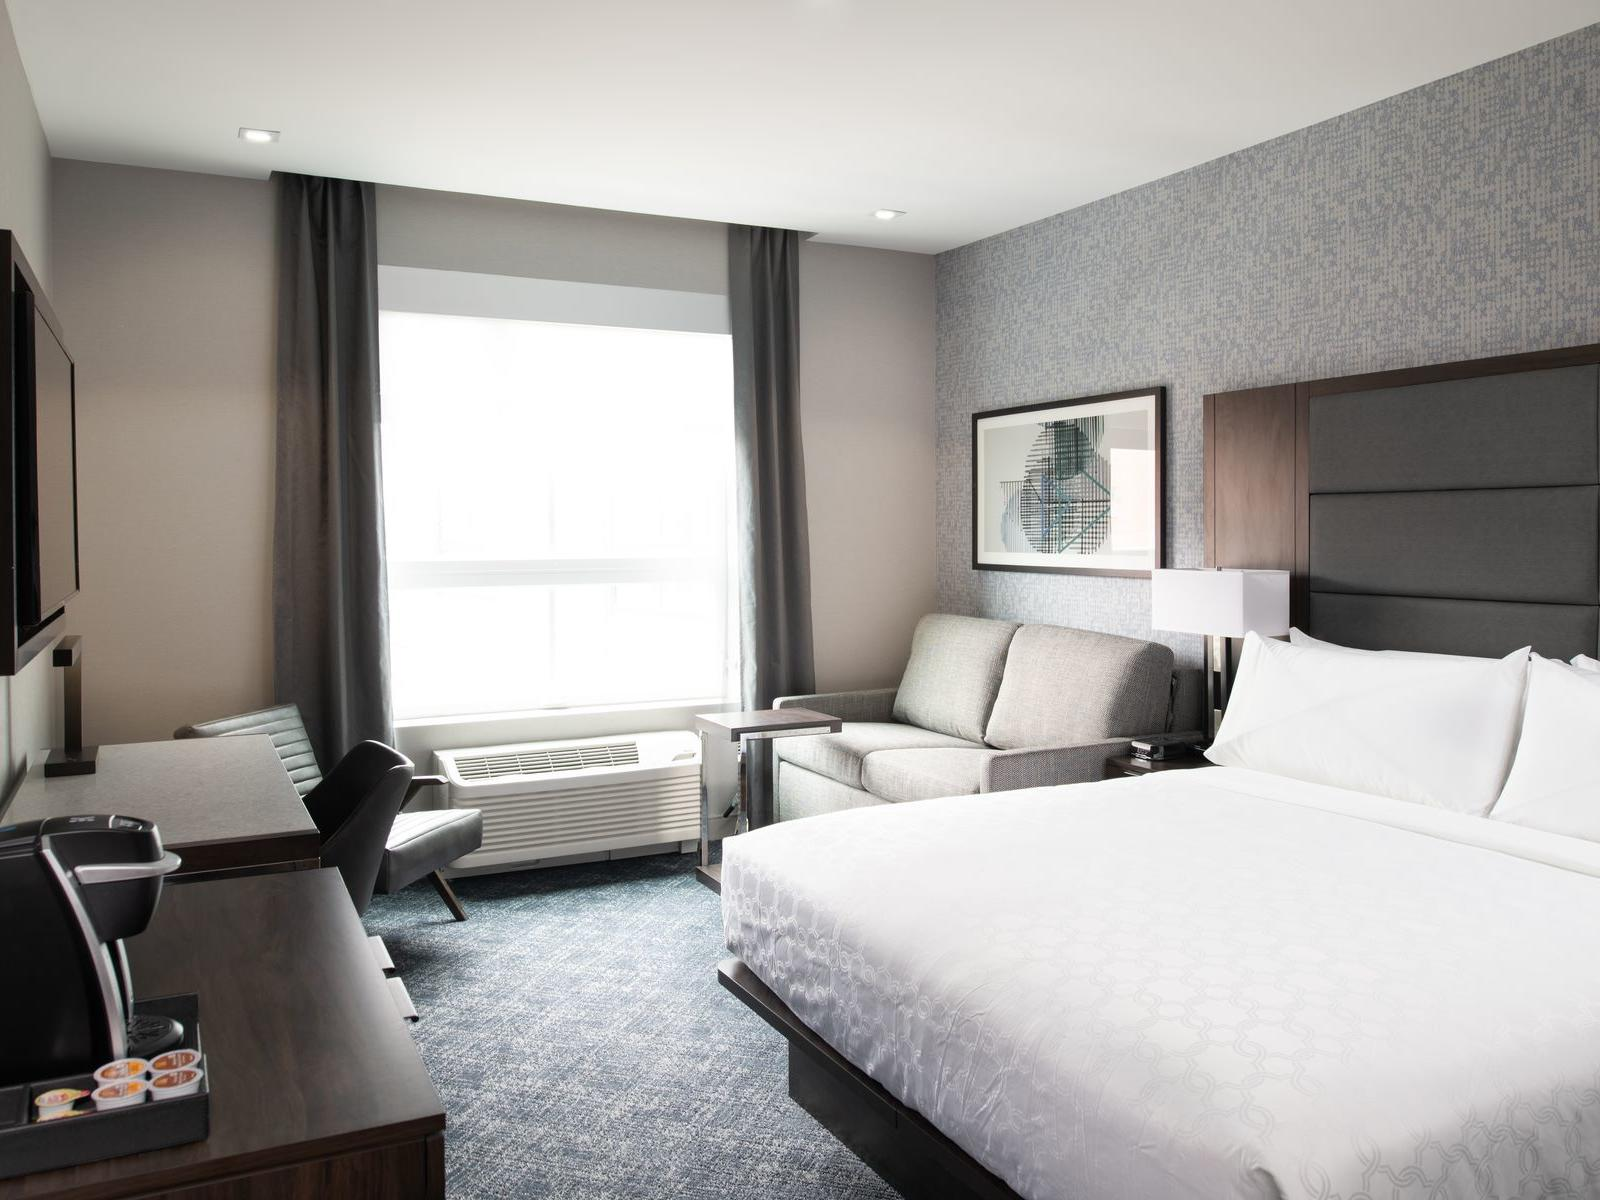 king bed and couch in modern hotel room with window